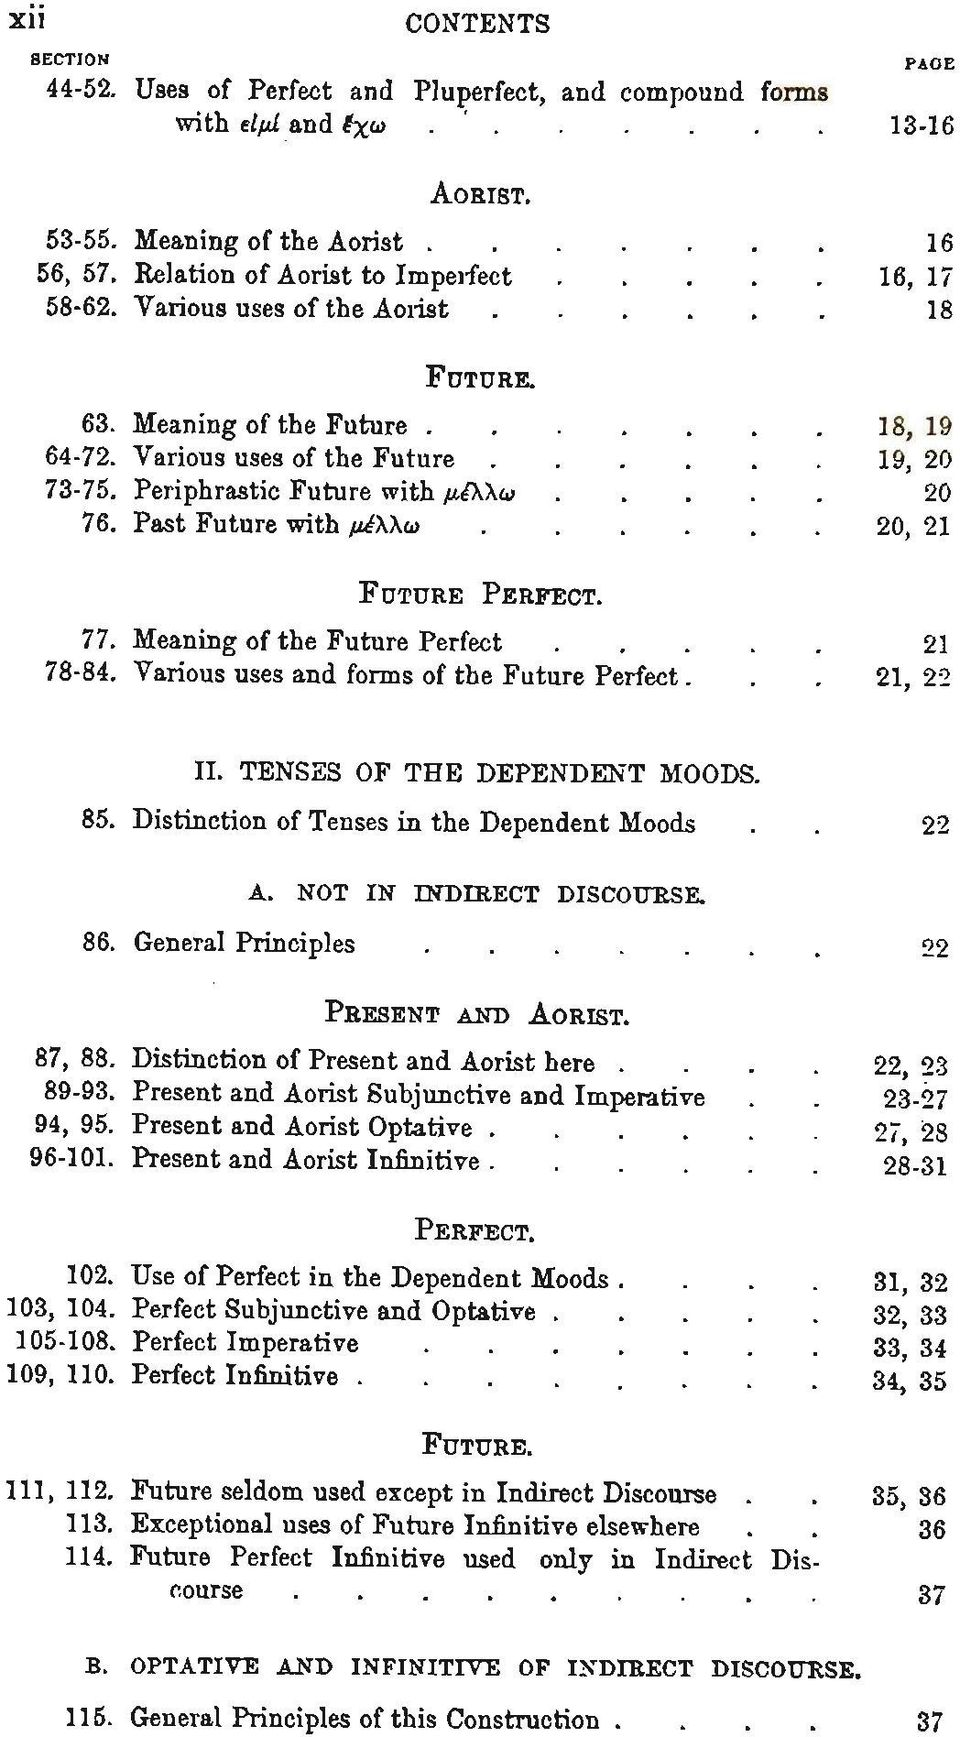 Meaning of the Future Perfect 21 84. Various uses and forms of the Future P e r f e c t... 21, 22 II. TENSES OF THE DEPENDENT MOODS. 85. Distinction of Tenses in the Dependent Moods.. 22 A.